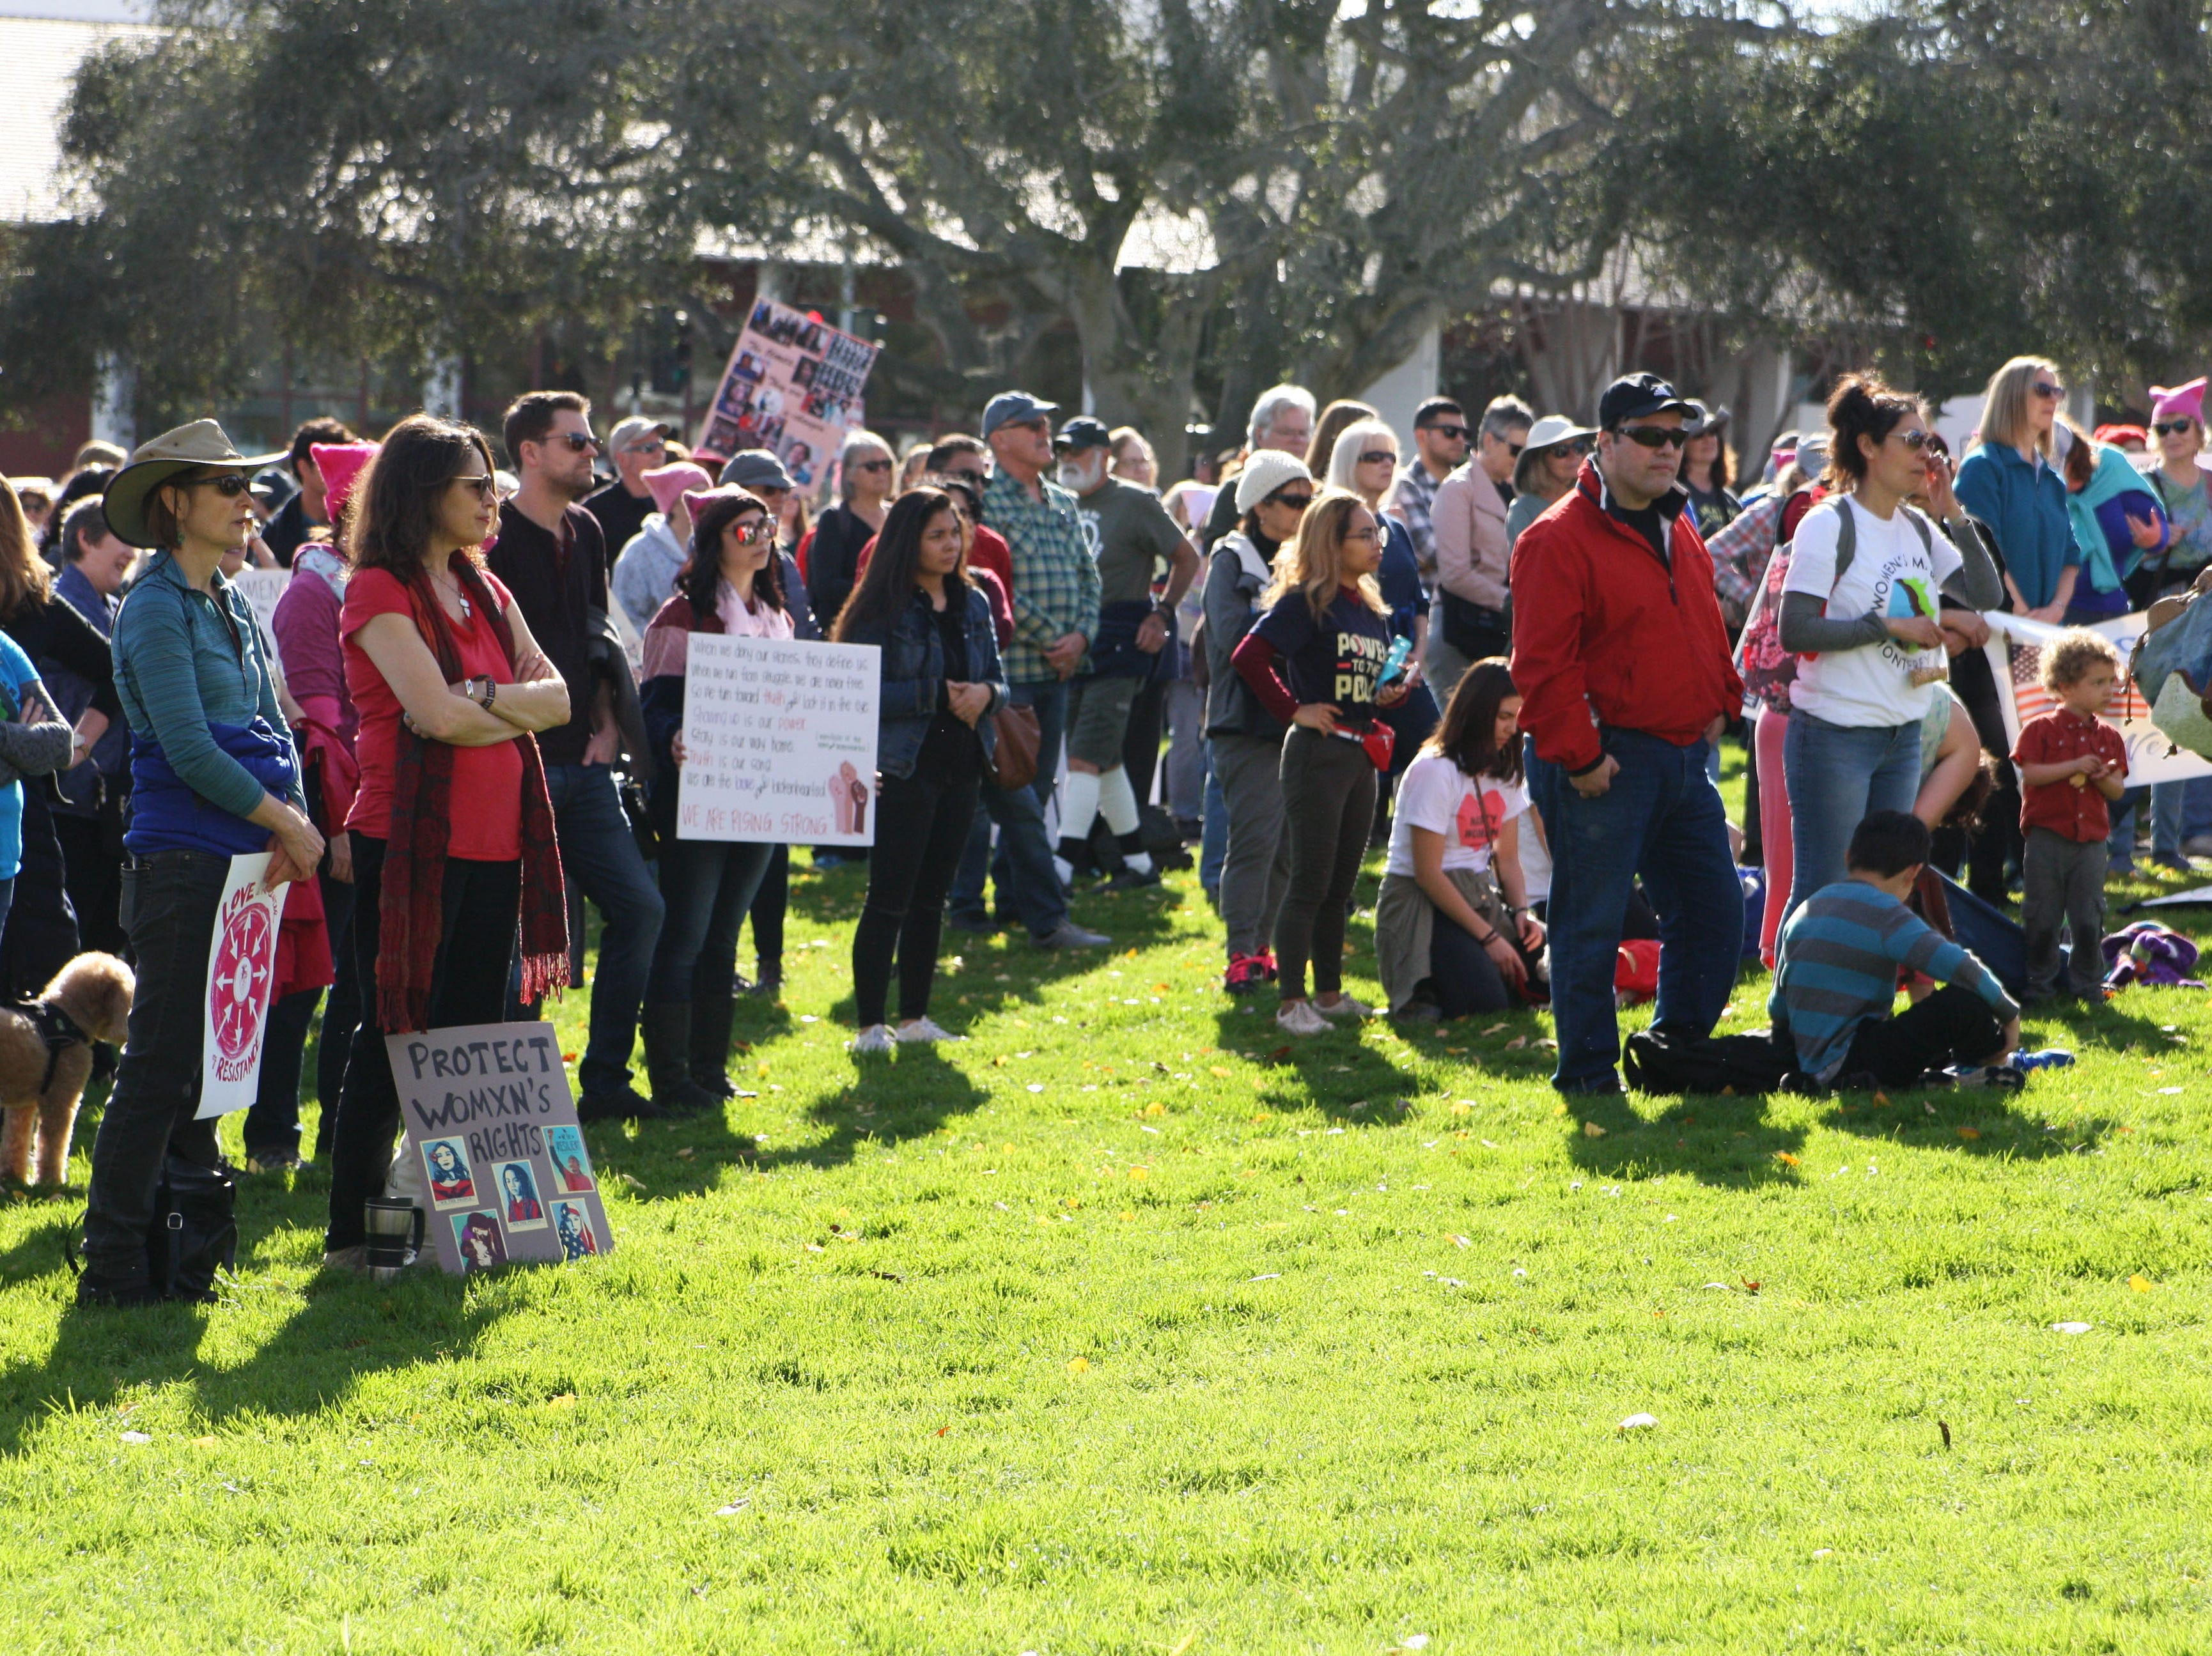 The crowd at the 2019 Monterey Women's March.